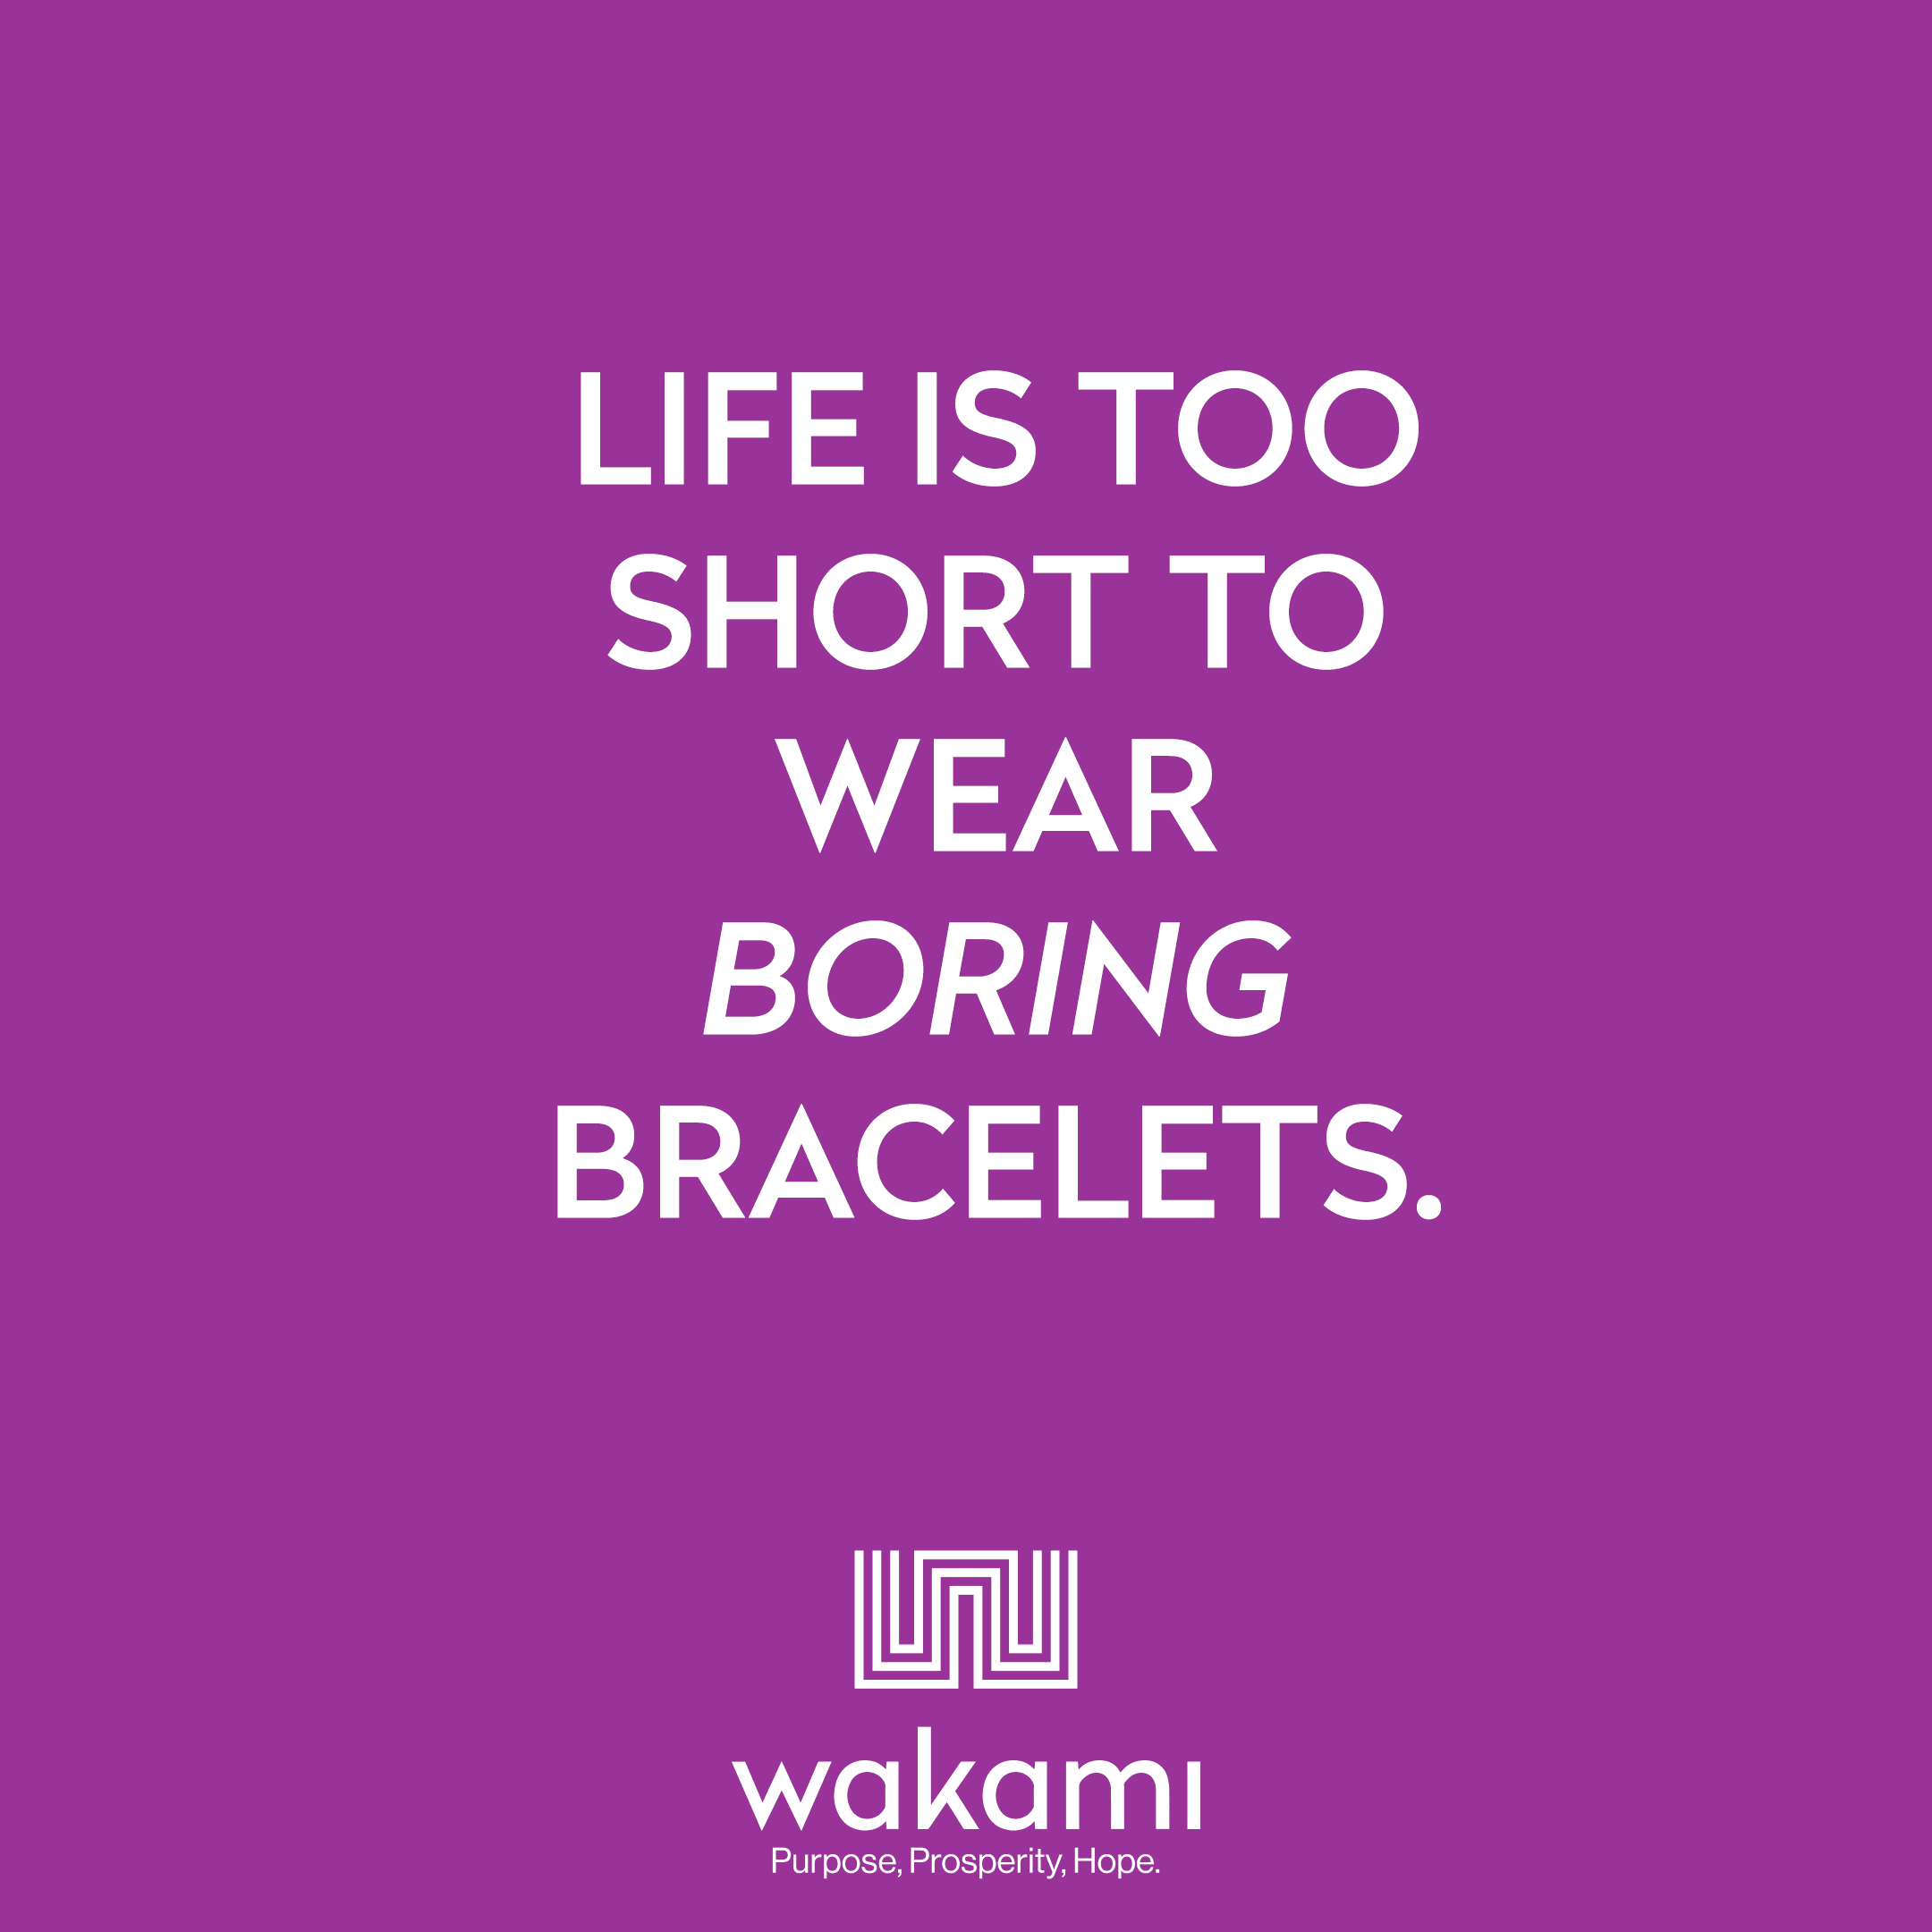 Life Is Too Short To Wear Boring Bracelets – Wakami